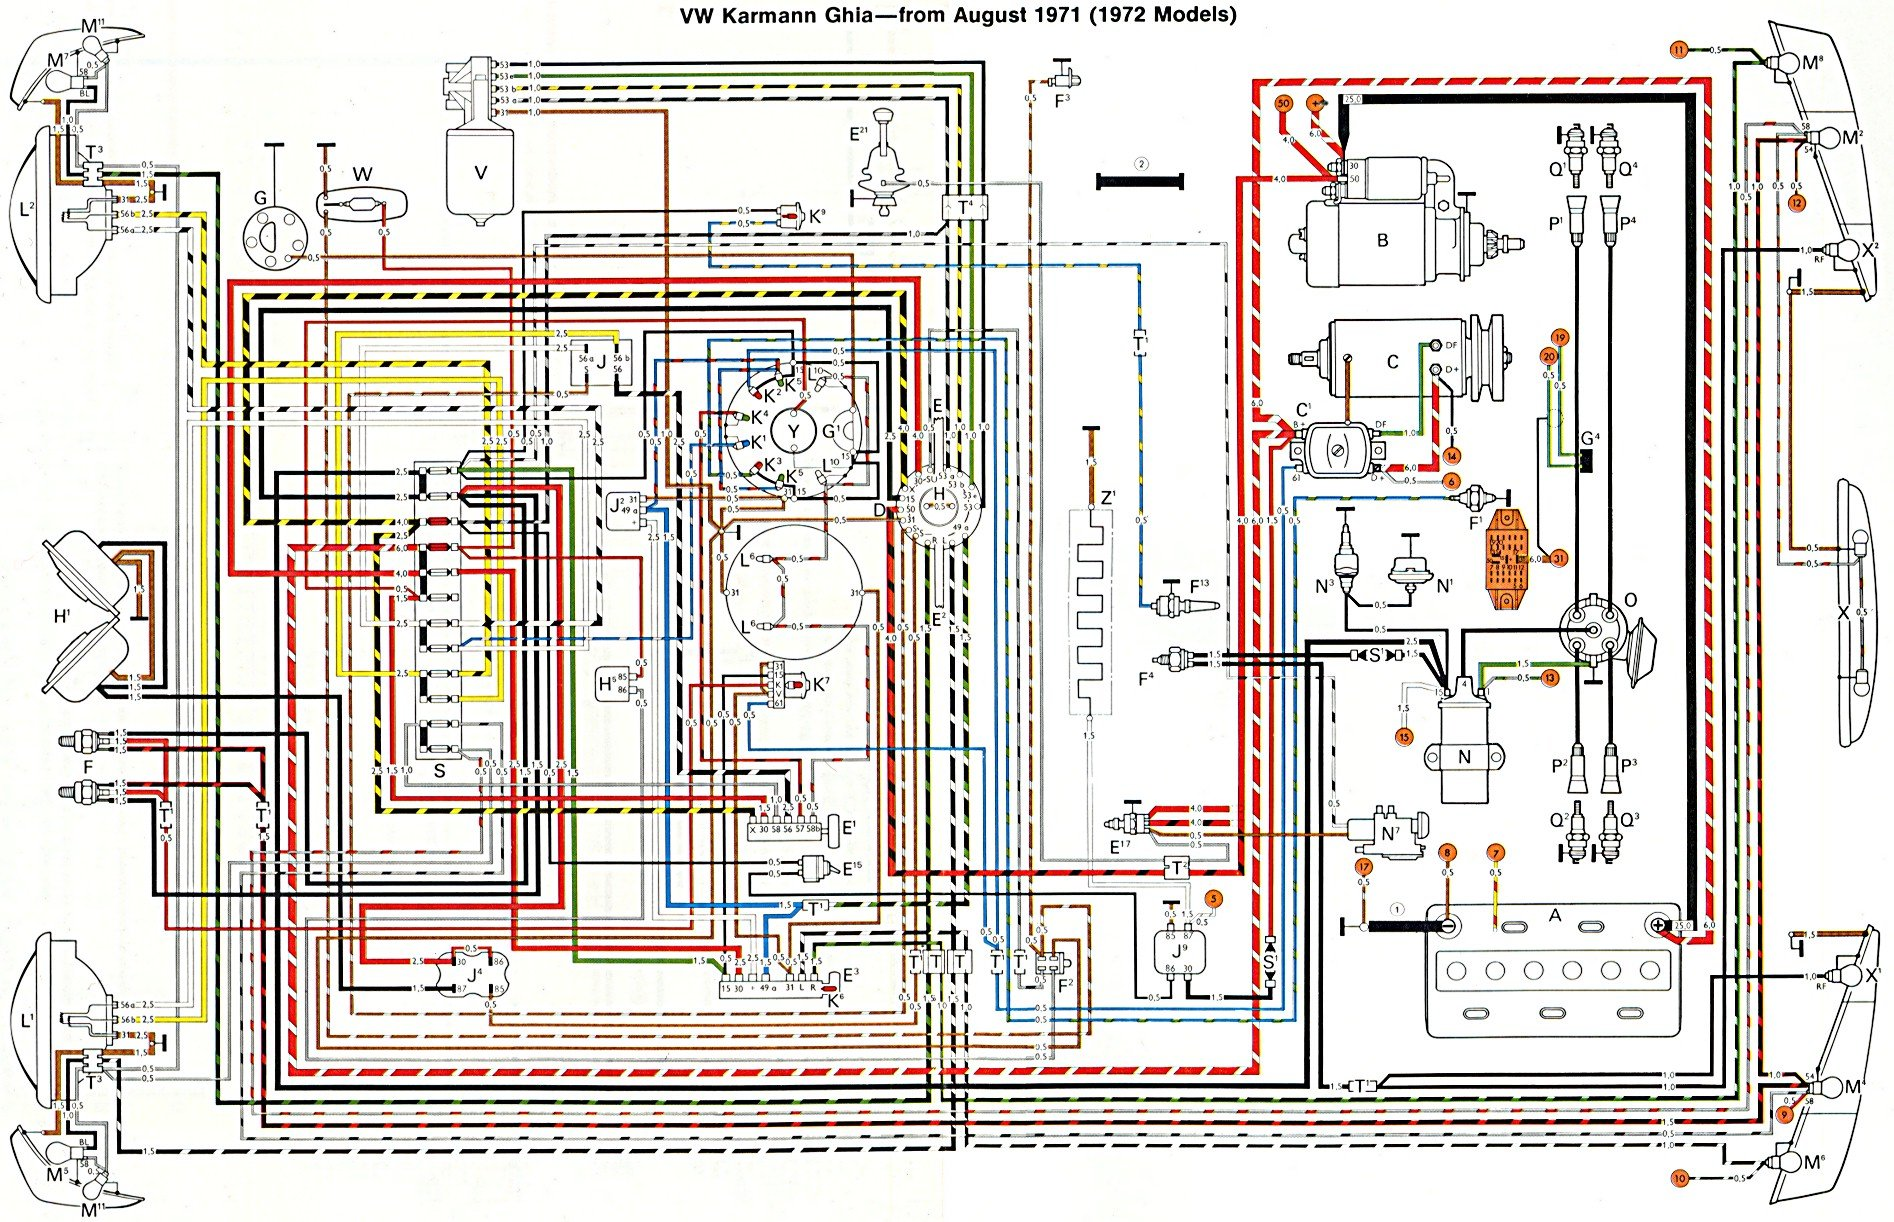 72ghia thesamba com ghia view topic heater lever spot light? 1969 beetle wiring diagram at sewacar.co